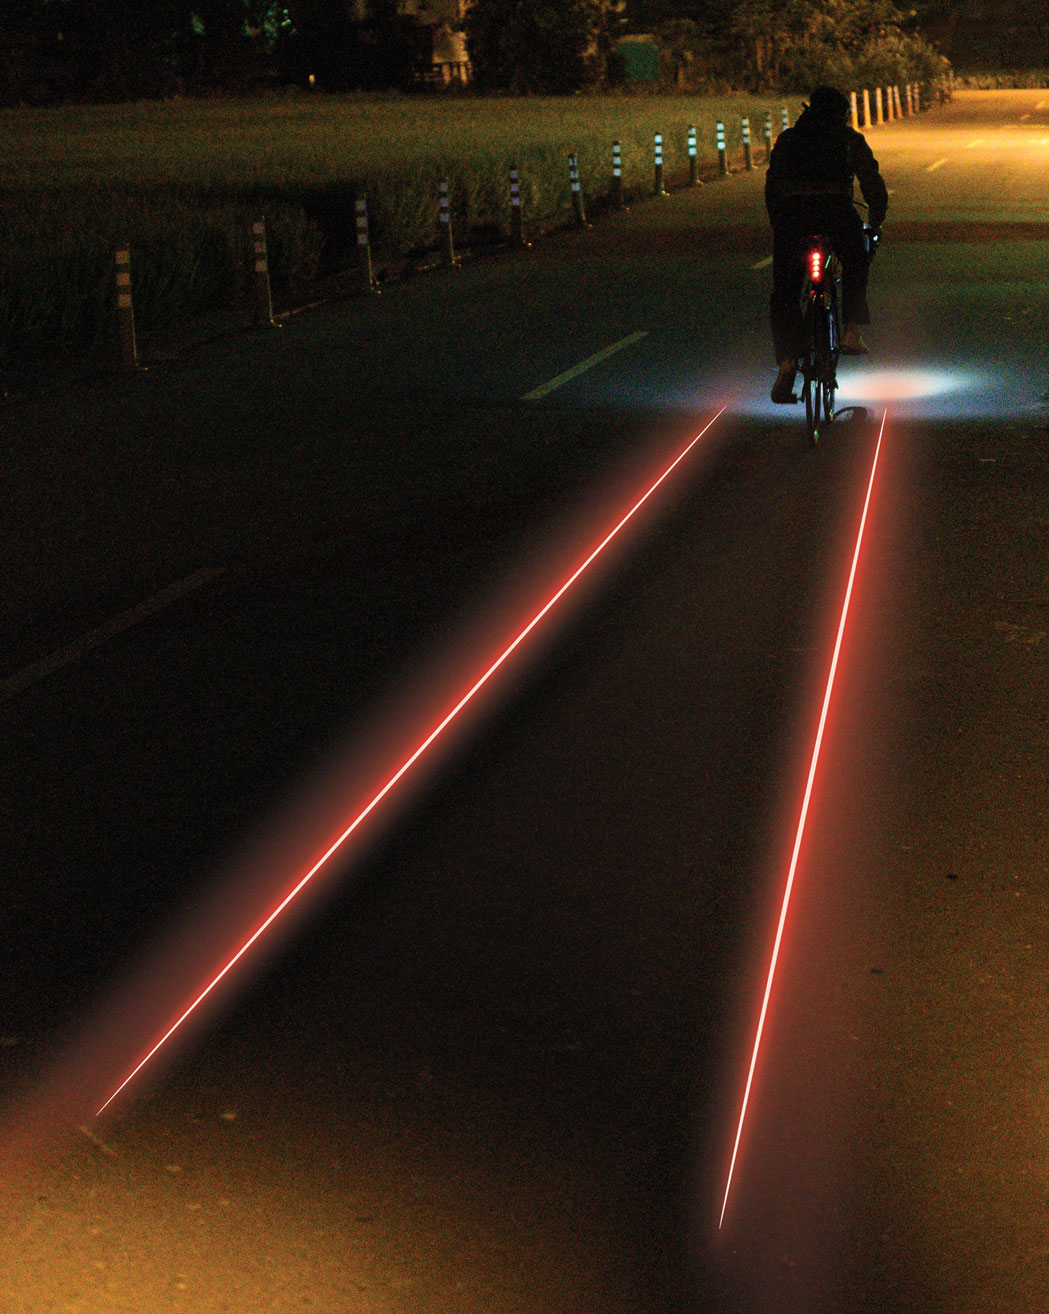 Lezyne Engineered Design Products Led Lights Laser